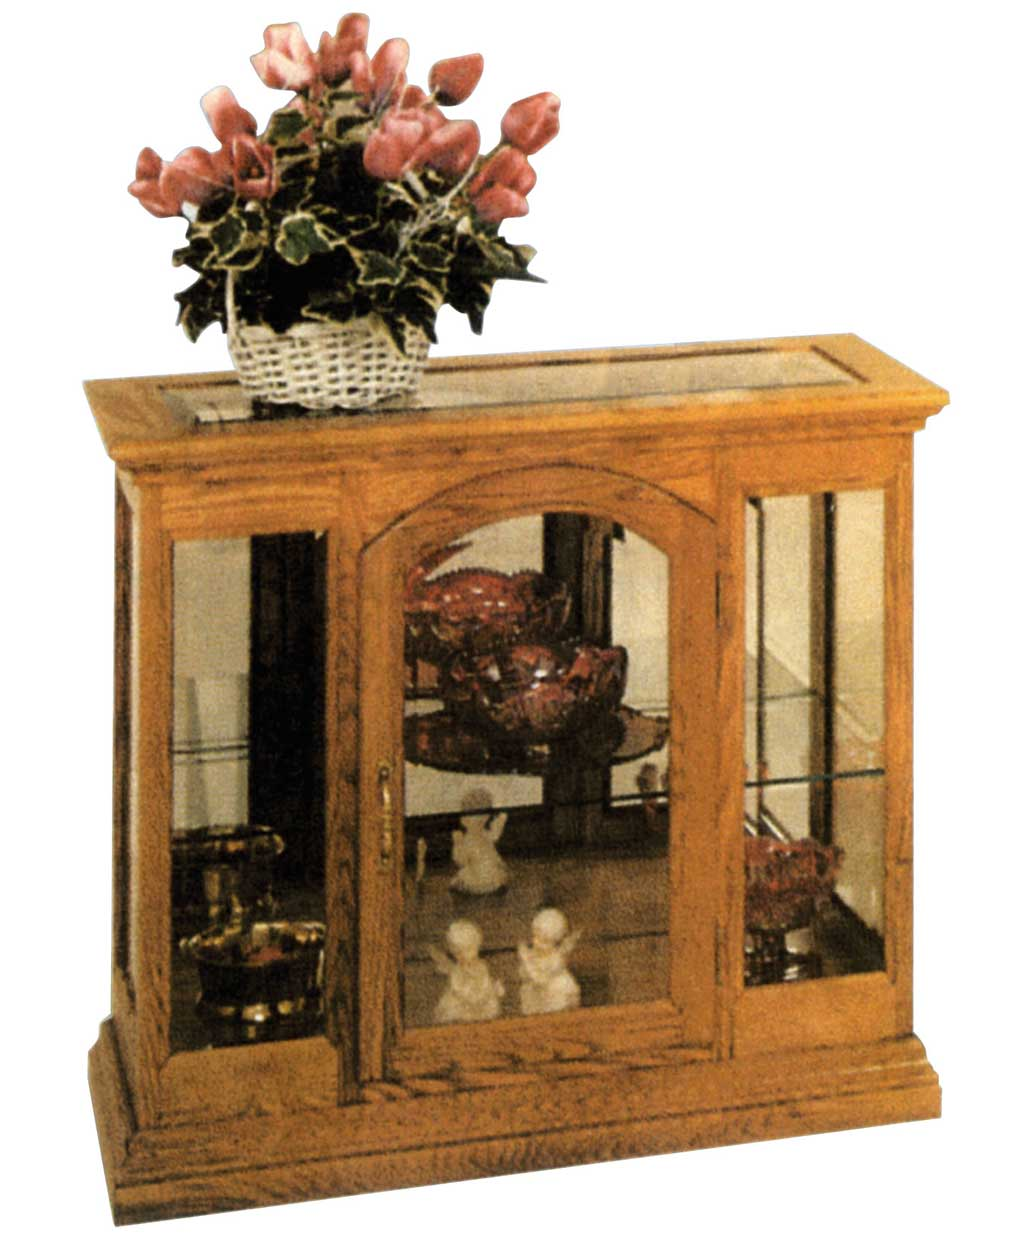 Curio Cabinet With A Beveled Glass Inlay [LM738]